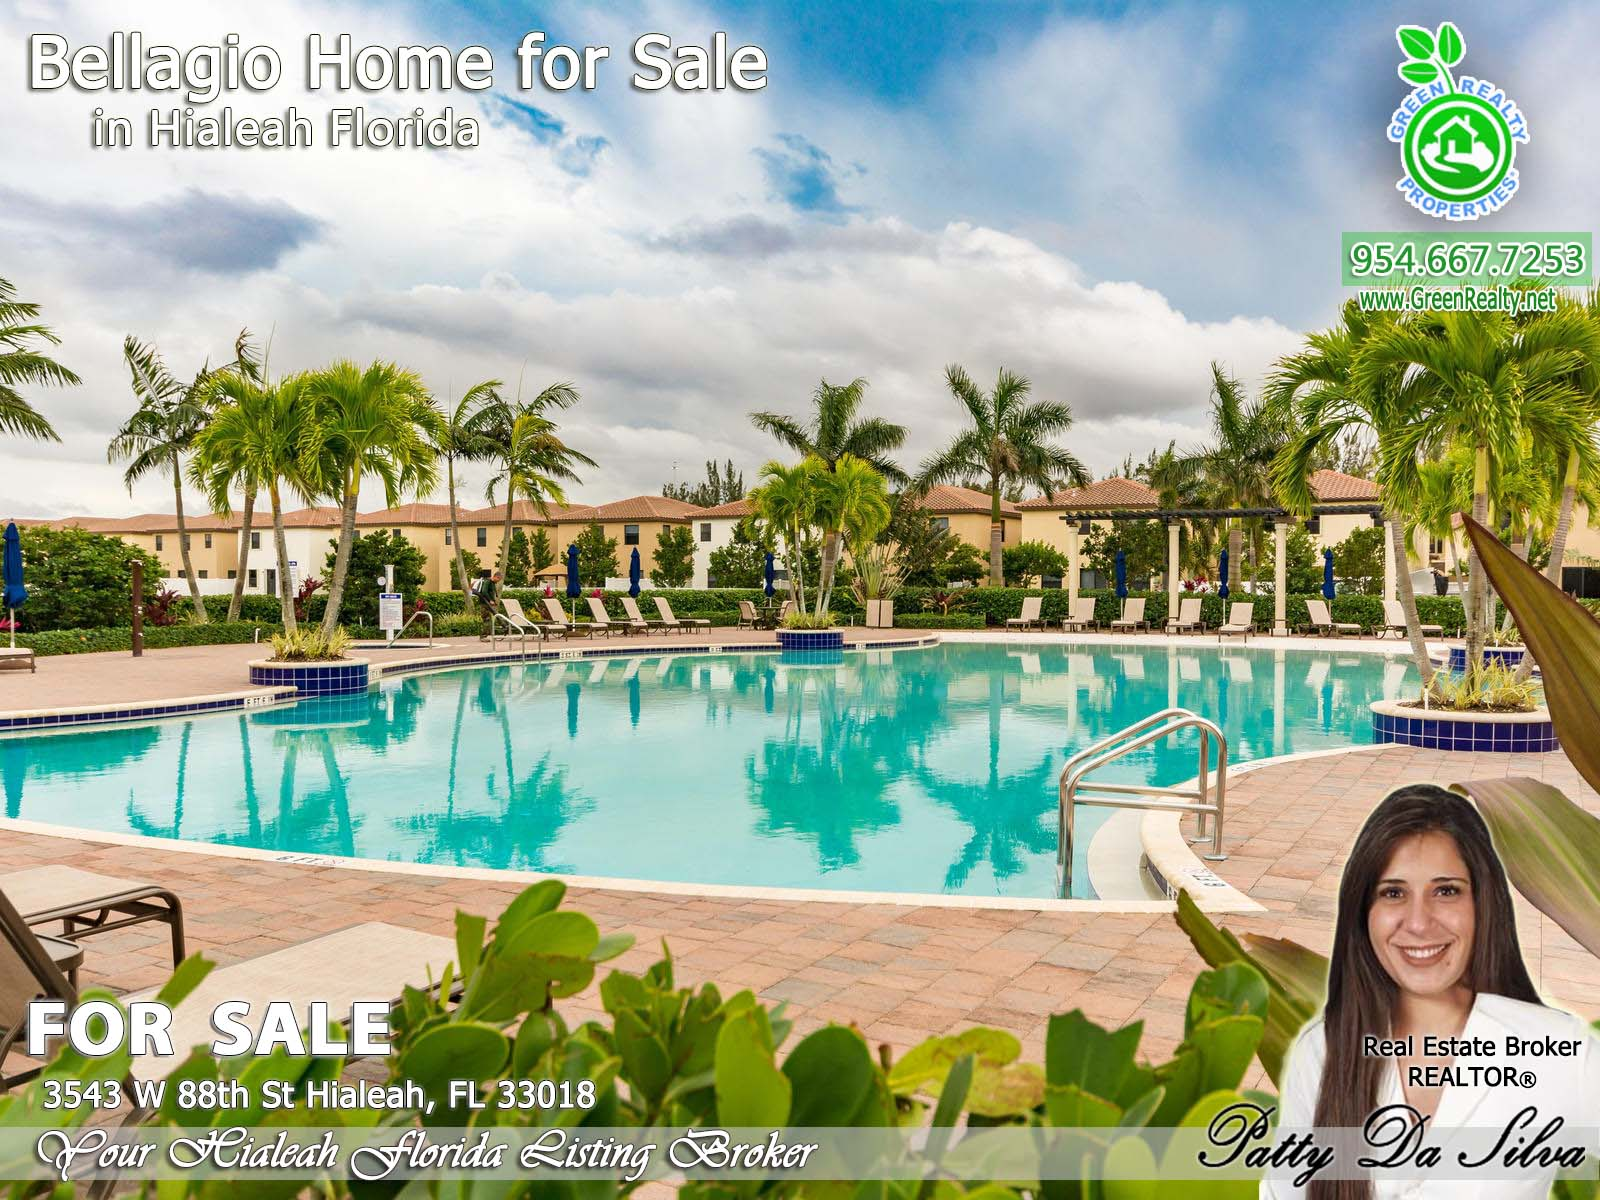 South florida homes for sale by broker Patty da silva of green realty properties (13)